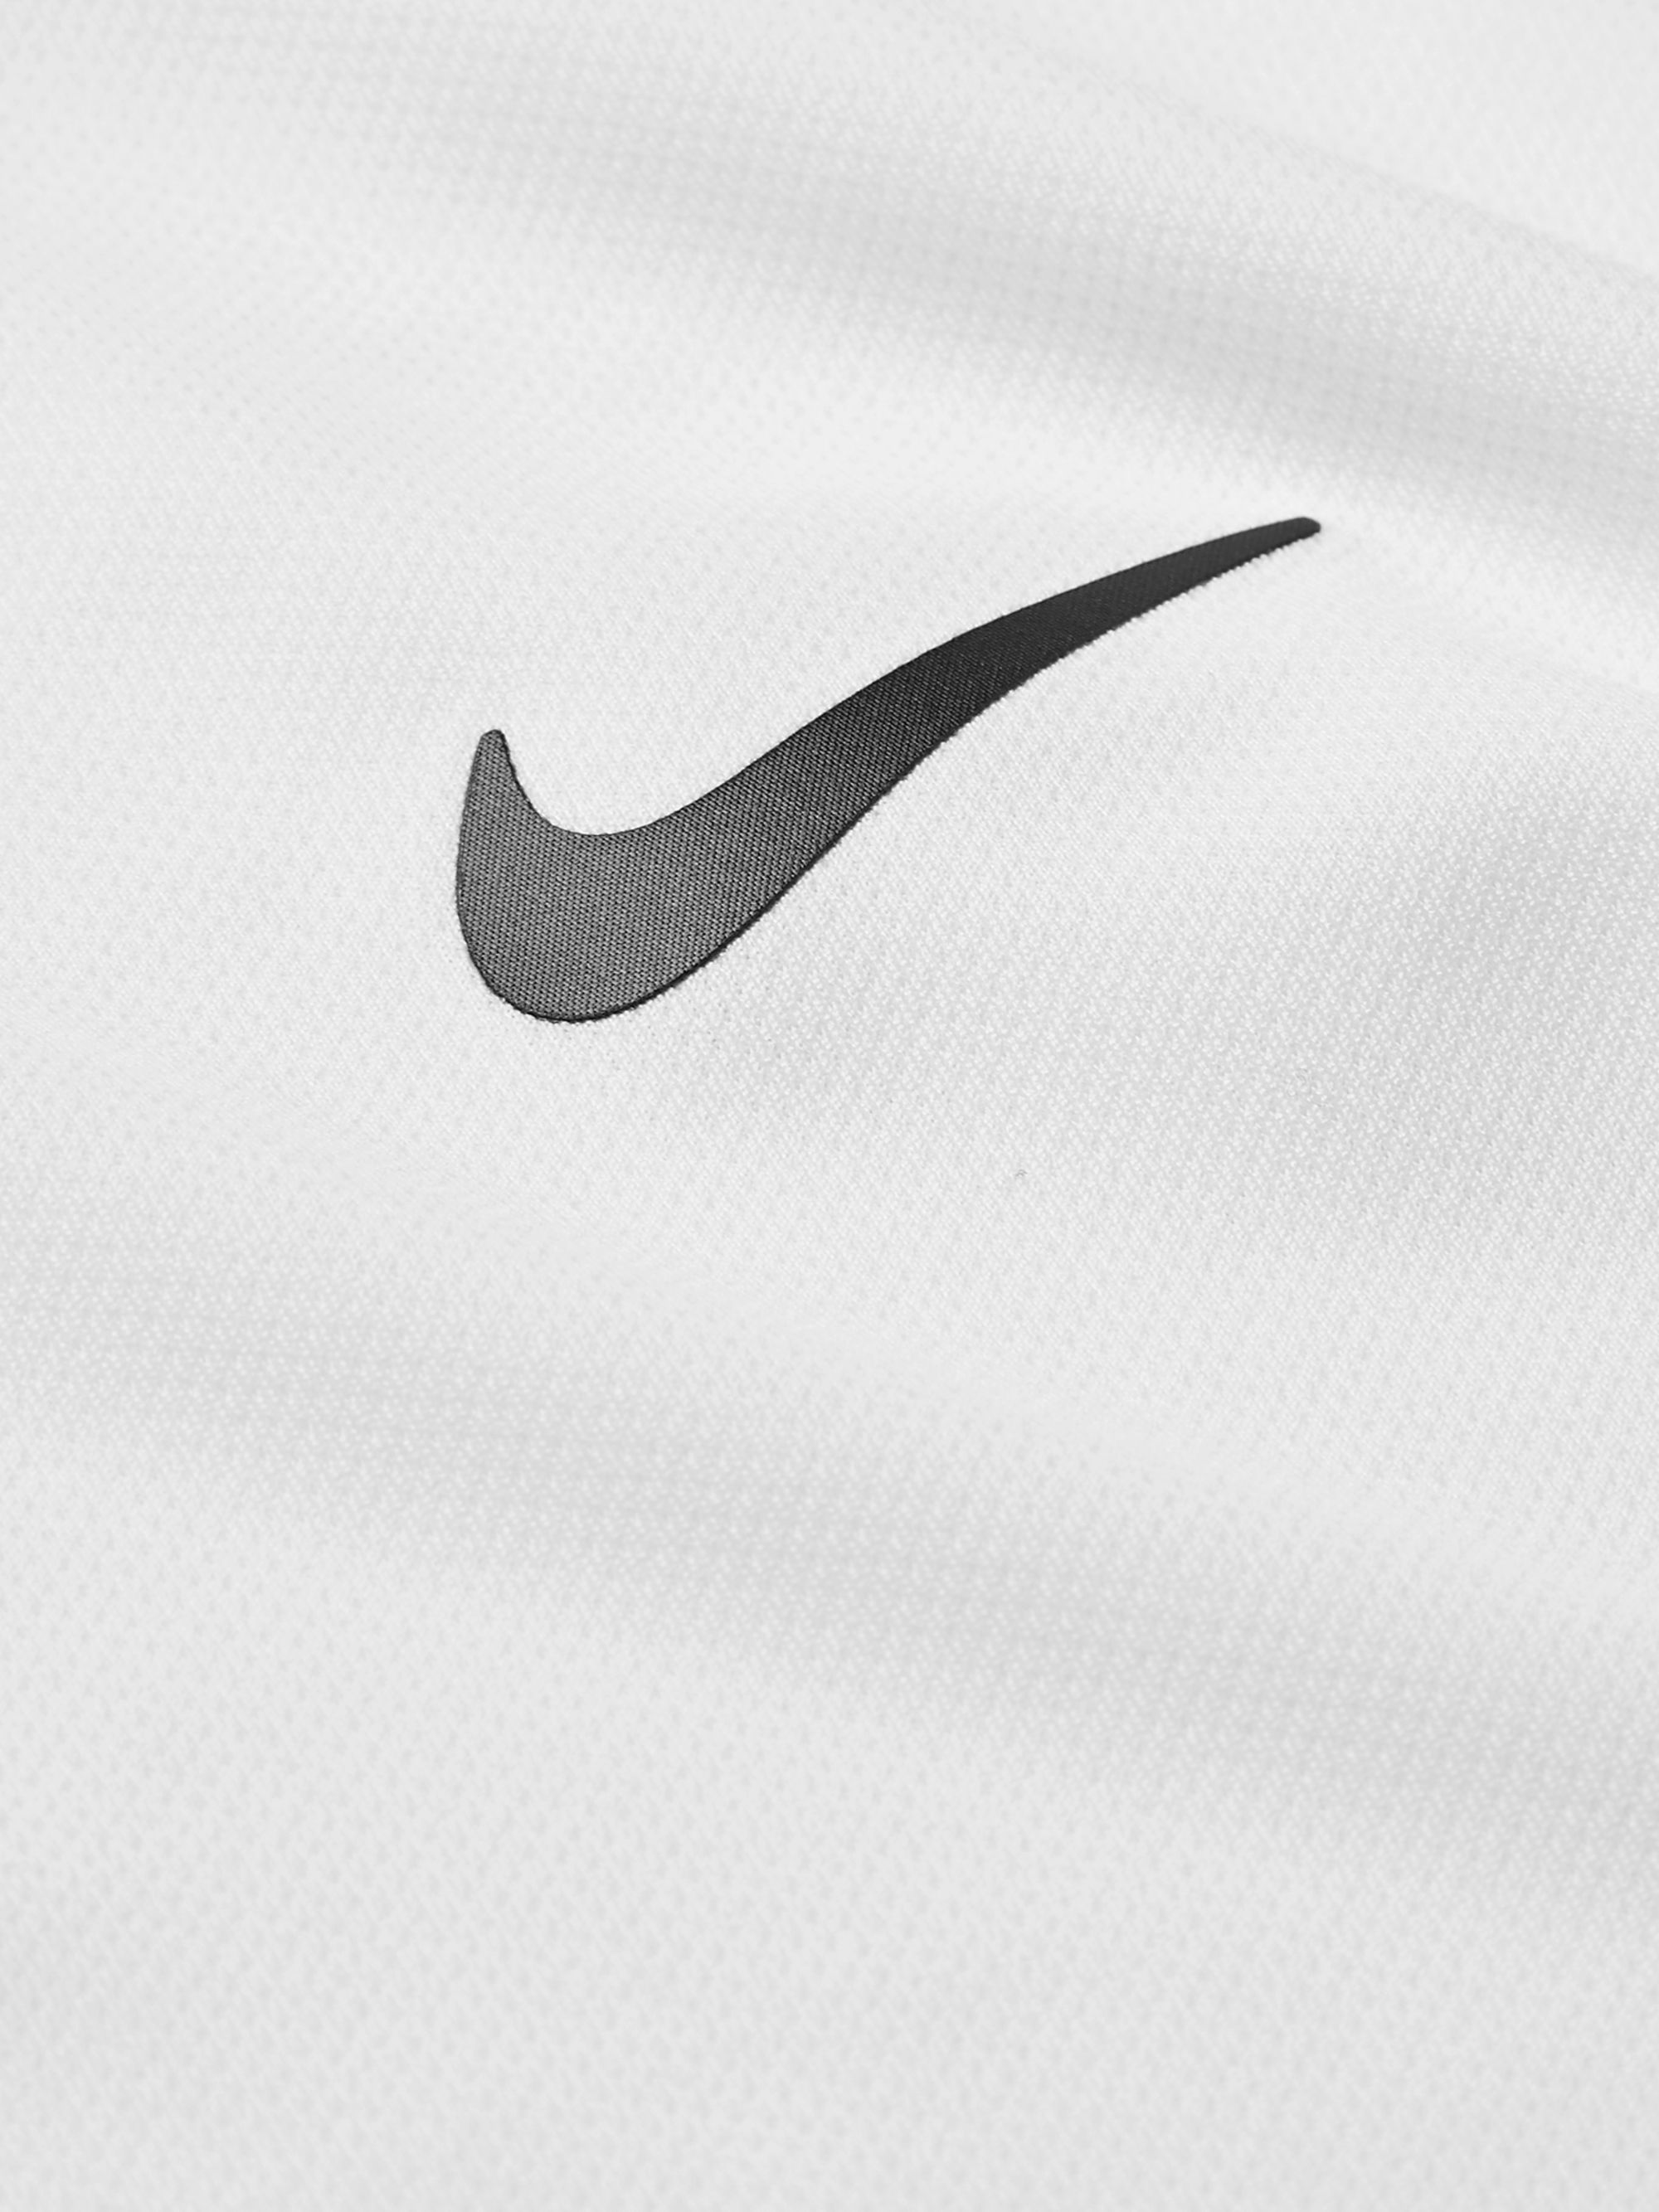 Nike Tennis NikeCourt Dri-FIT Tennis Polo Shirt